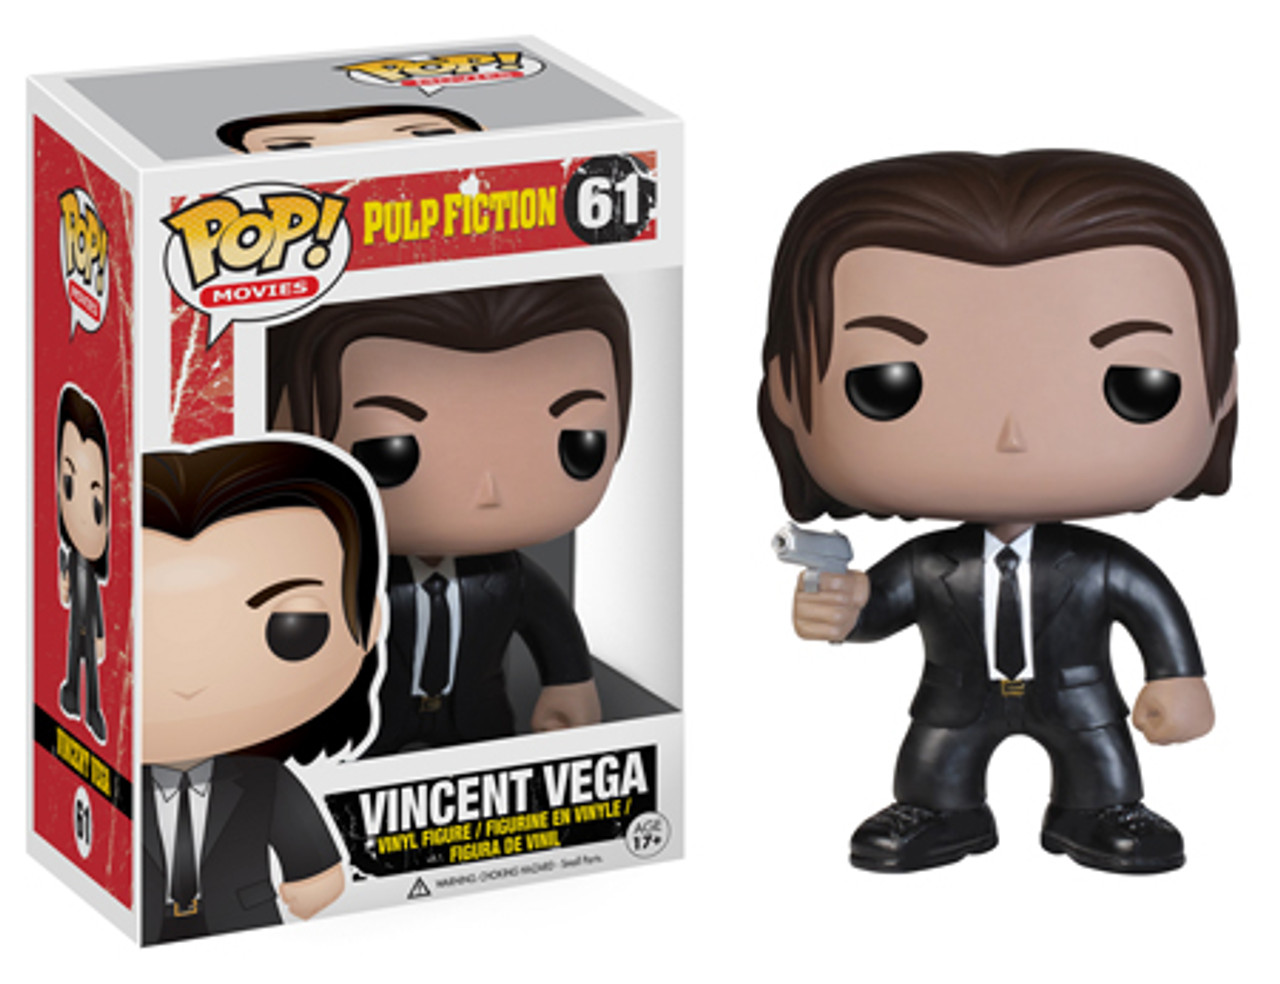 Pulp Fiction Funko POP! Movies Vincent Vega Vinyl Figure #61